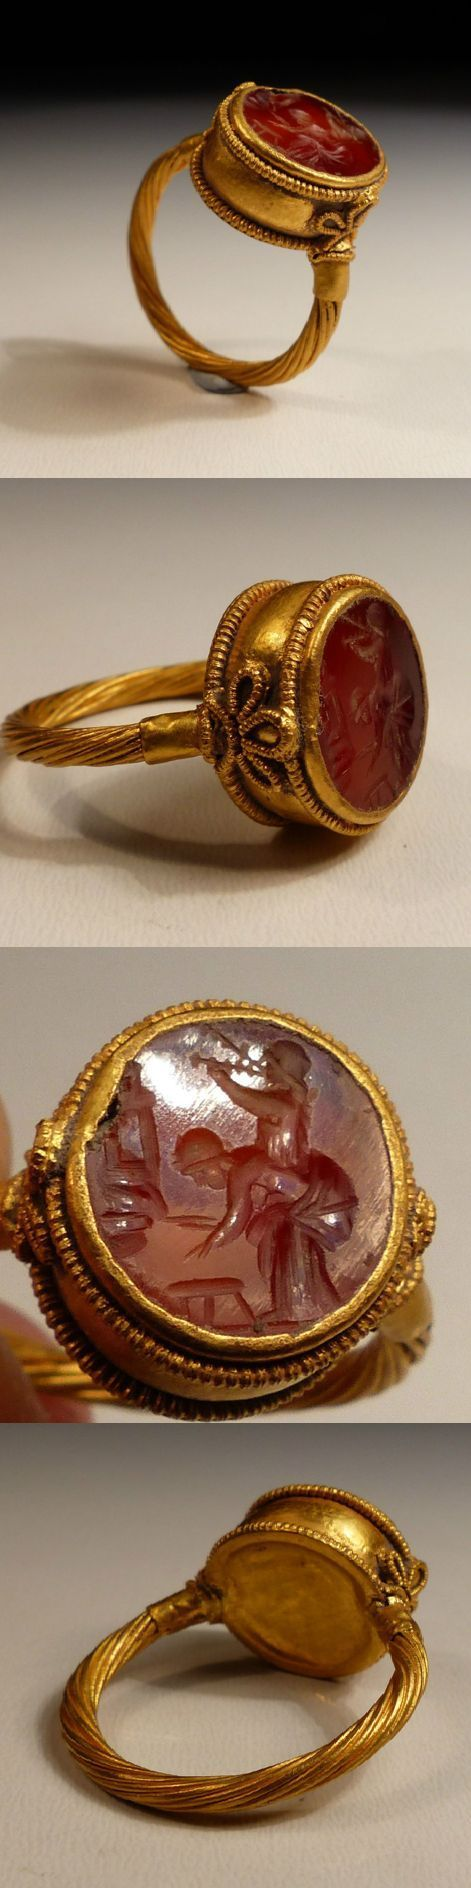 cool Roman Gold Ring, comprising of a band crafted with twisted gold strands represen...